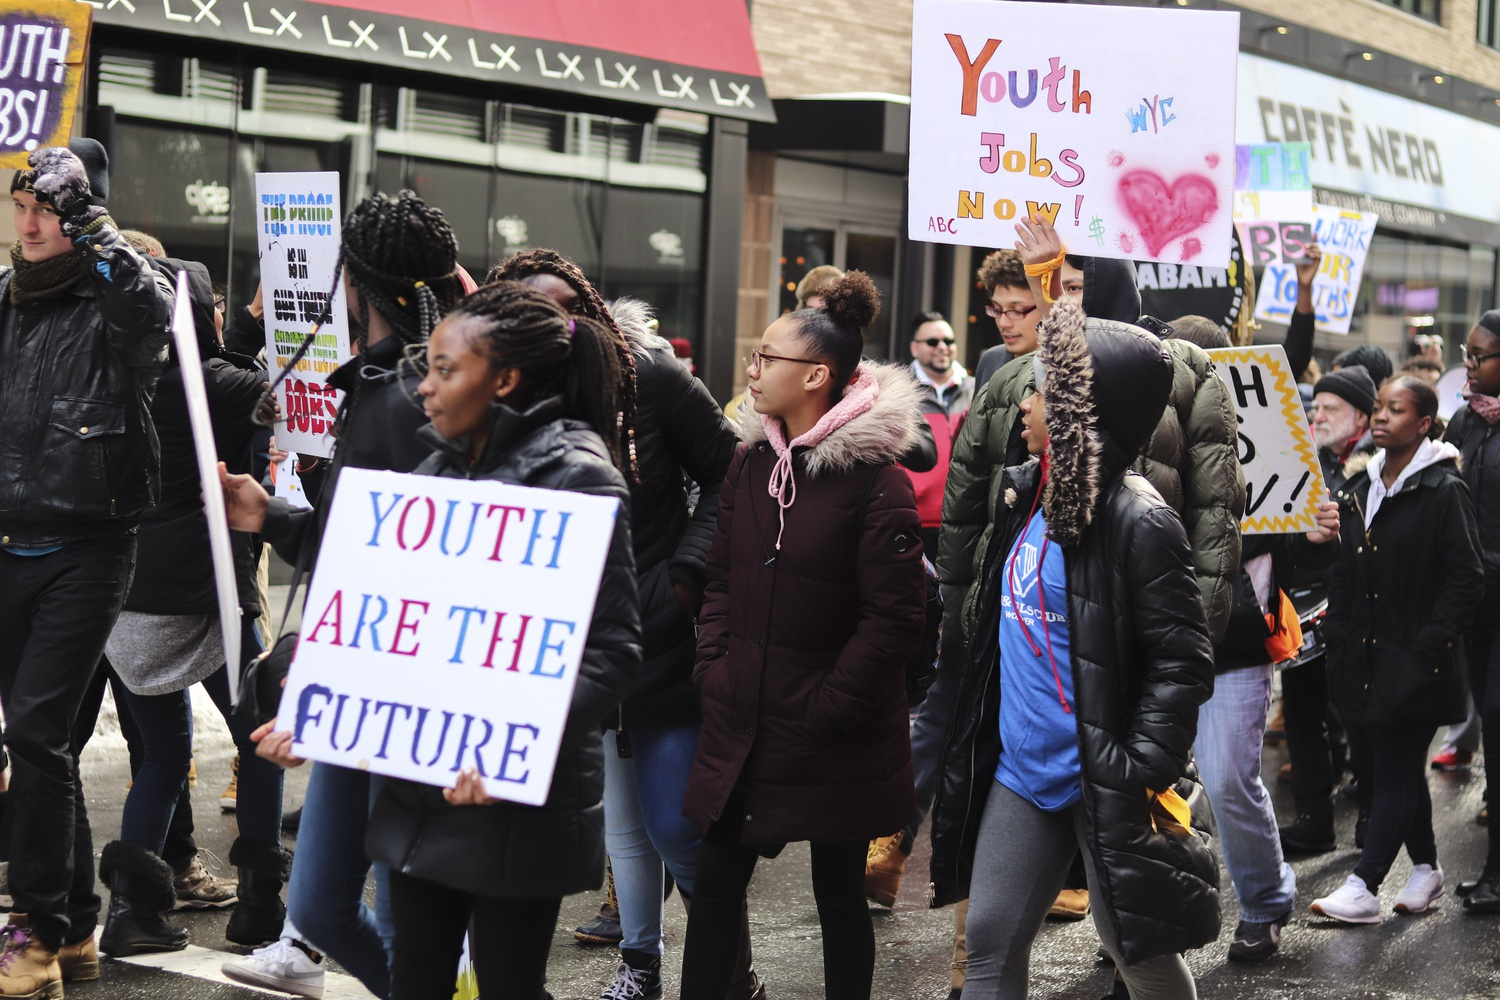 March for Youth Jobs